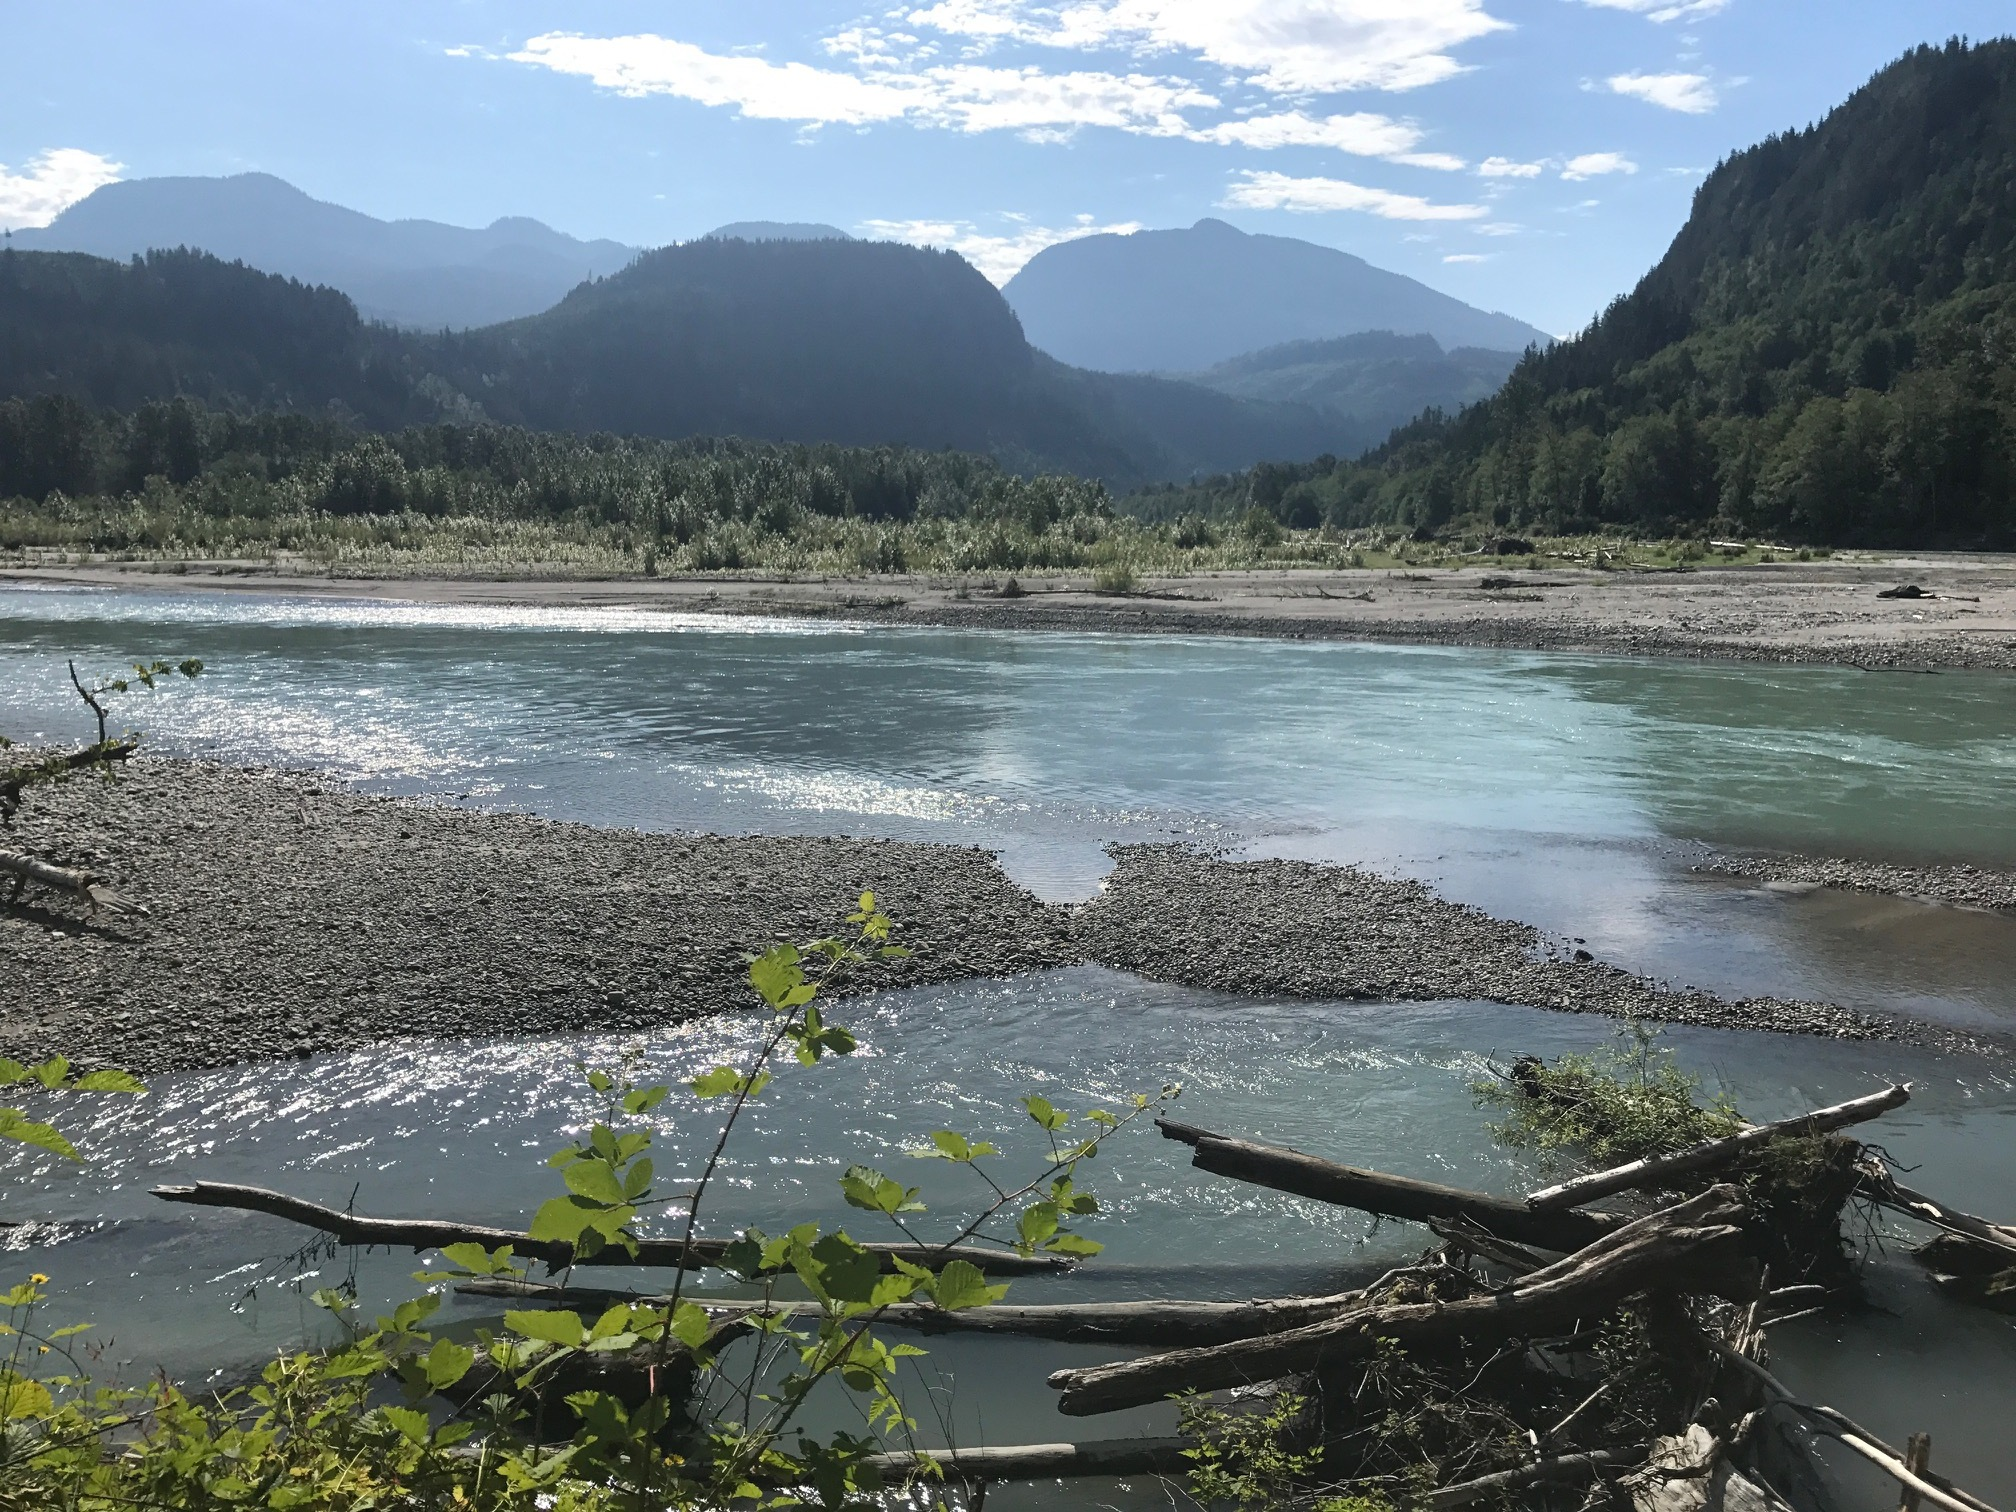 Smith Preserve, located off the Sauk River in the North Cascades. Photo by Randi Shaw